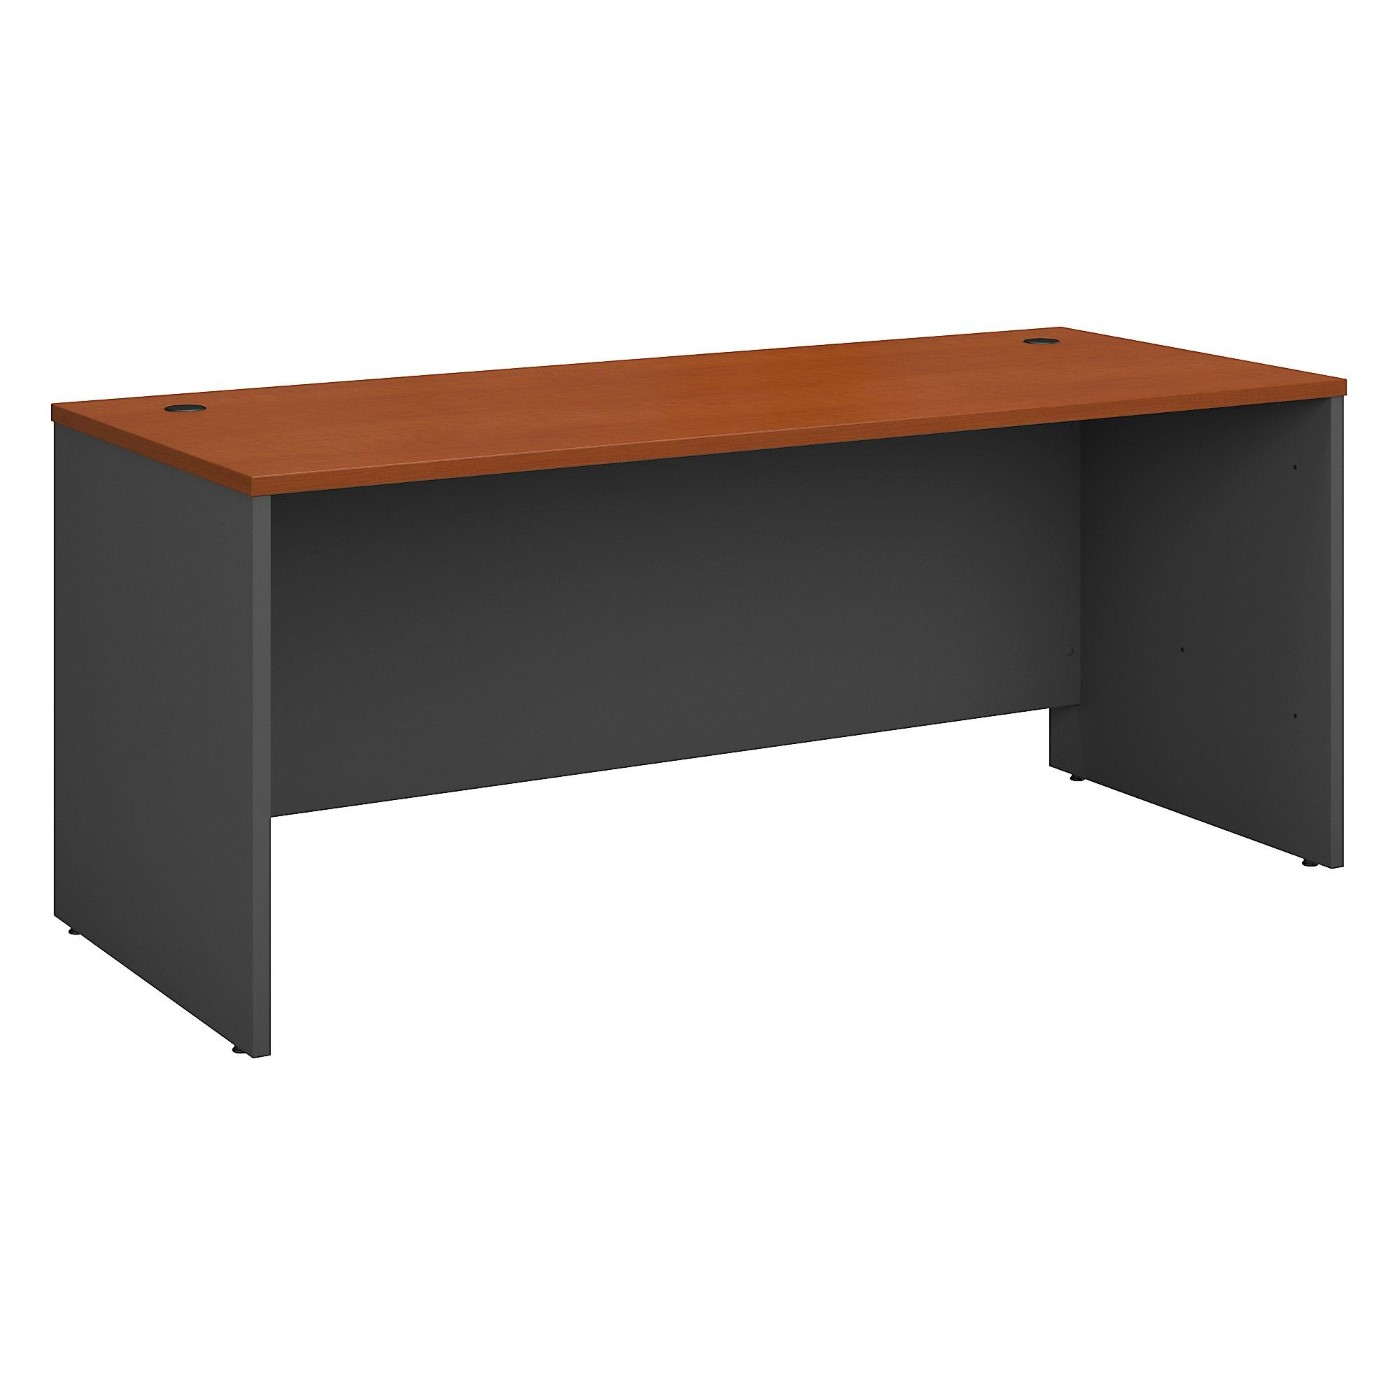 BUSH BUSINESS FURNITURE SERIES C 72W X 30D OFFICE DESK. FREE SHIPPING.